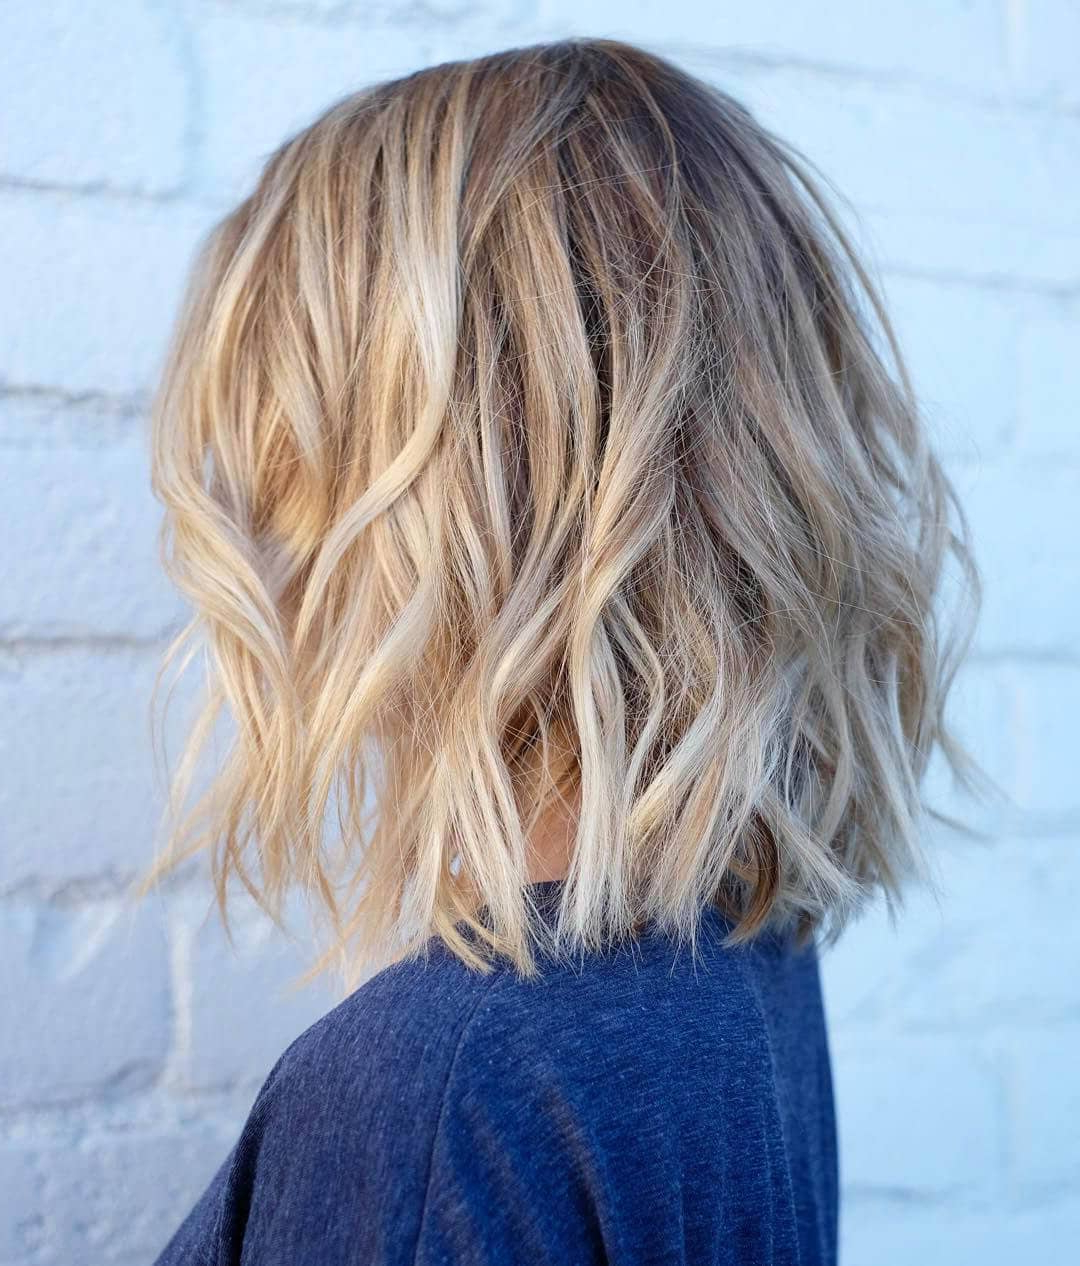 50 Fresh Short Blonde Hair Ideas To Update Your Style In 2018 Throughout White Blonde Curly Layered Bob Hairstyles (View 9 of 20)